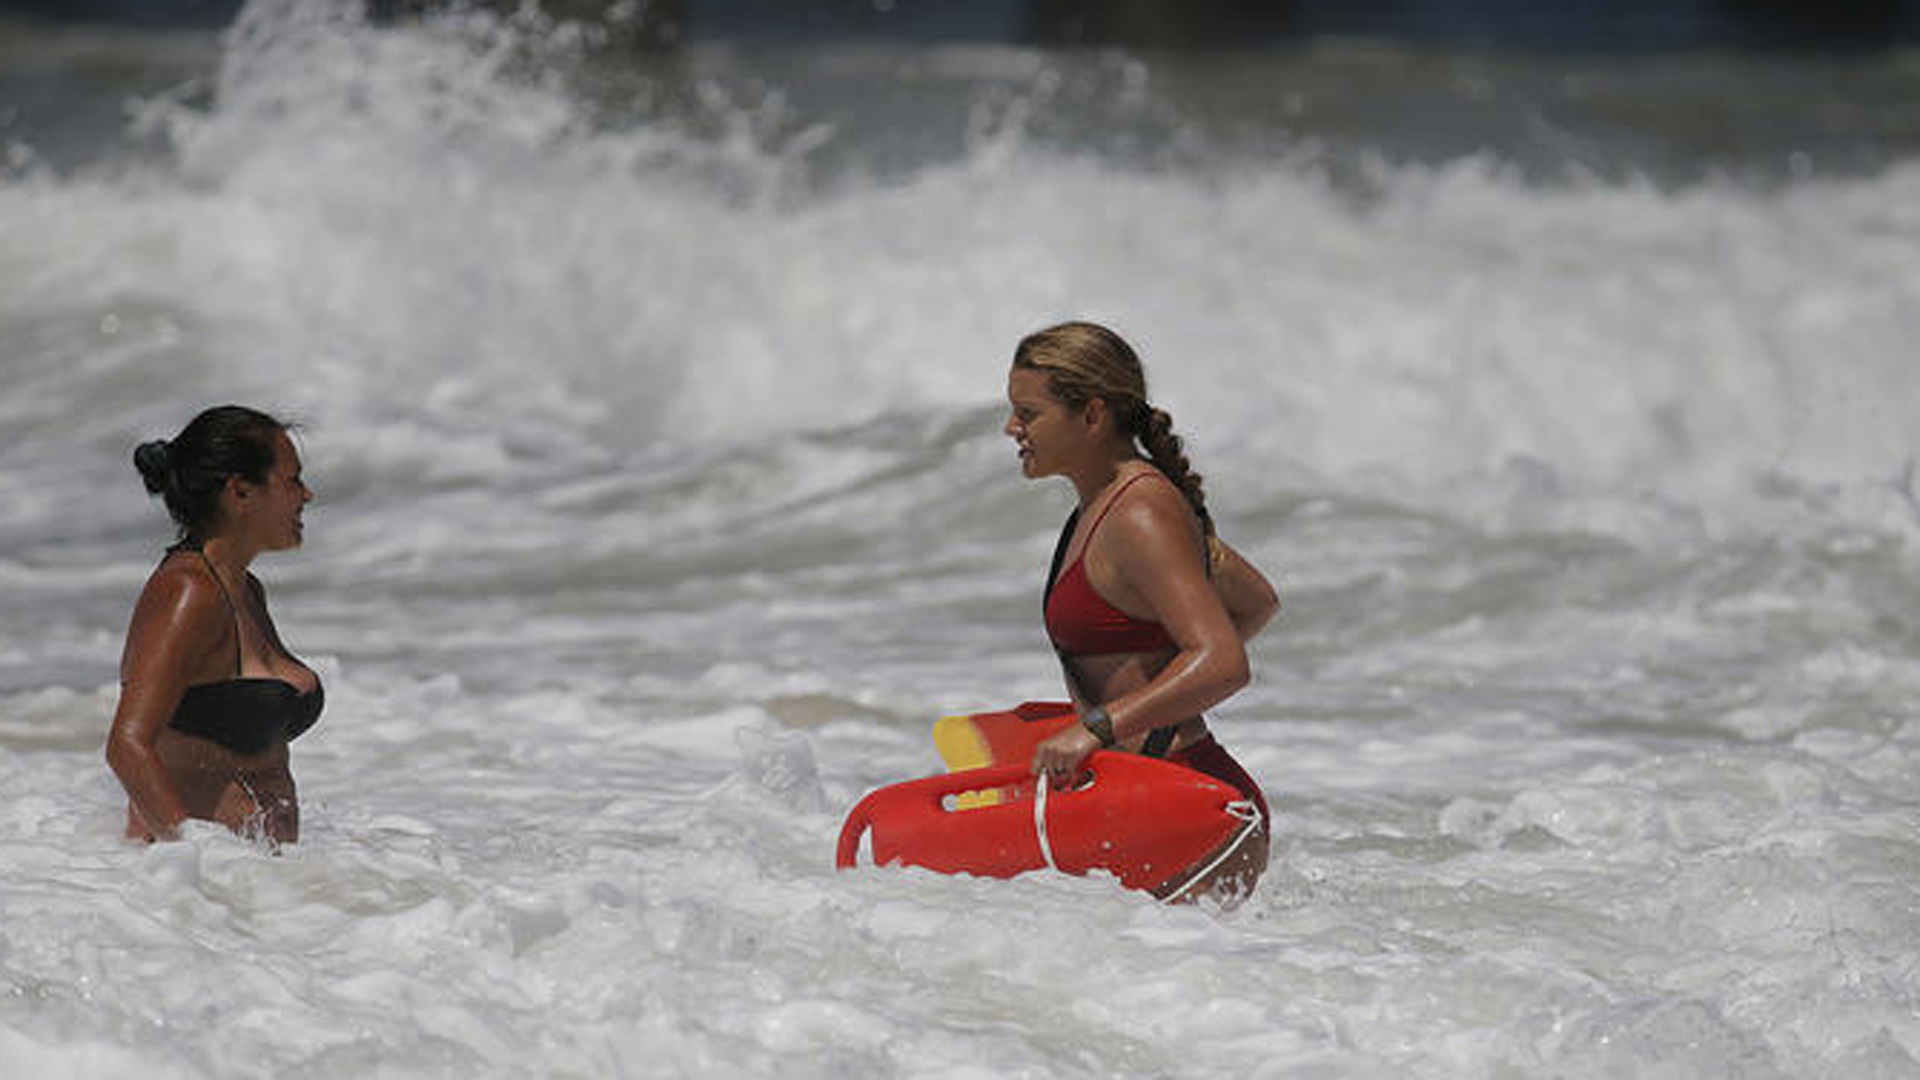 A 53-year-old man was reported missing about 4 p.m. off Huntington Beach. Above, a lifeguard warns a swimmer about rip currents in July. (Allen J. Schaben / Los Angeles Times)